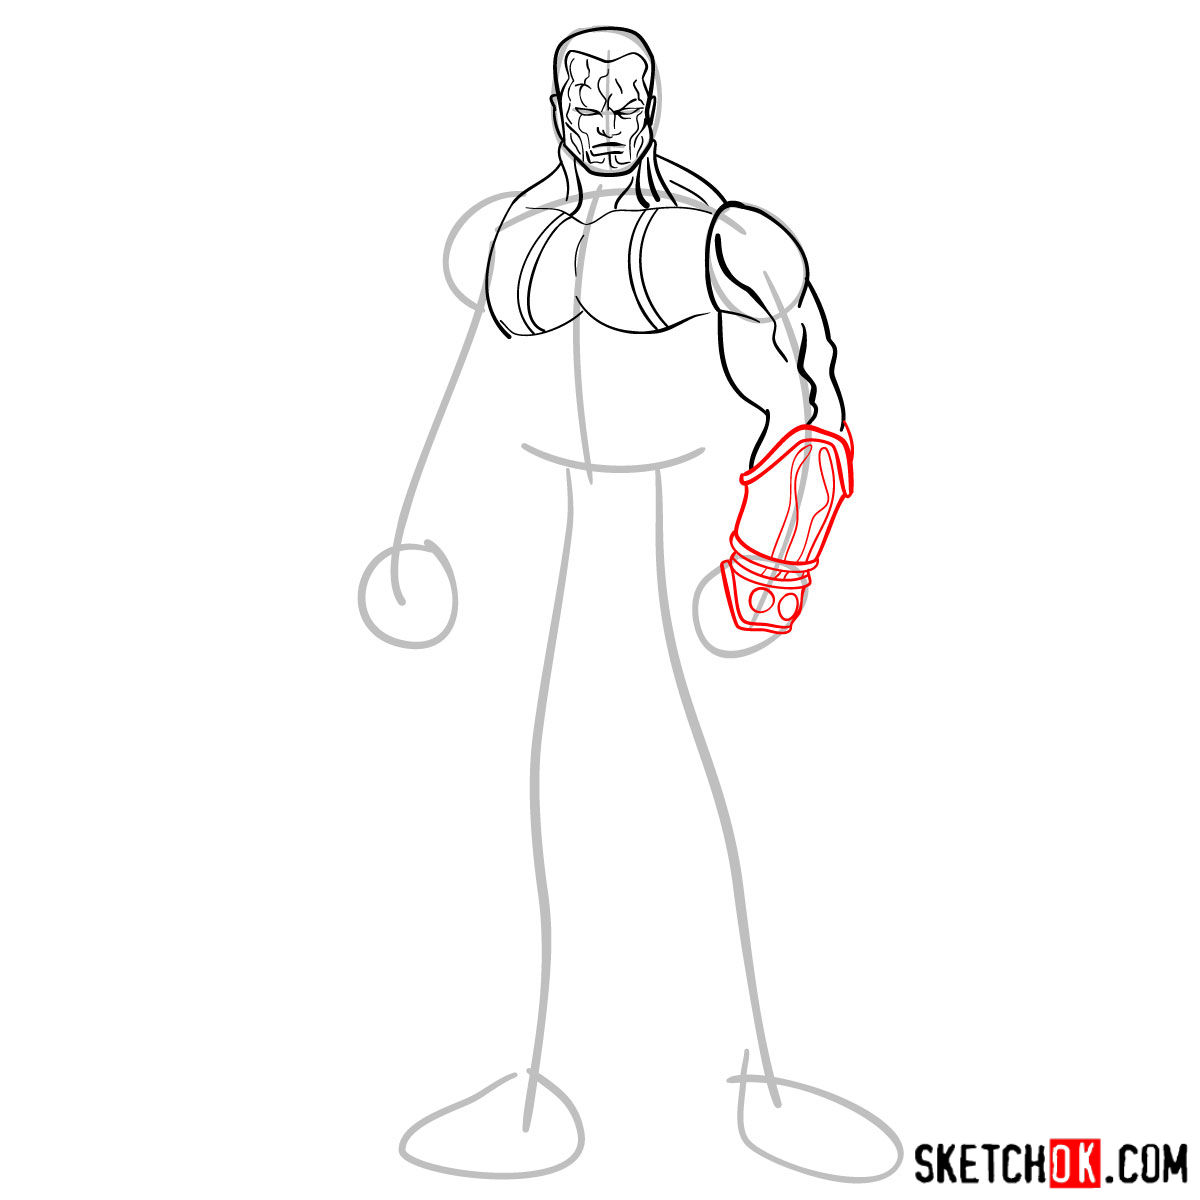 How to draw Colossus from Deadpool film and X-Men series - 